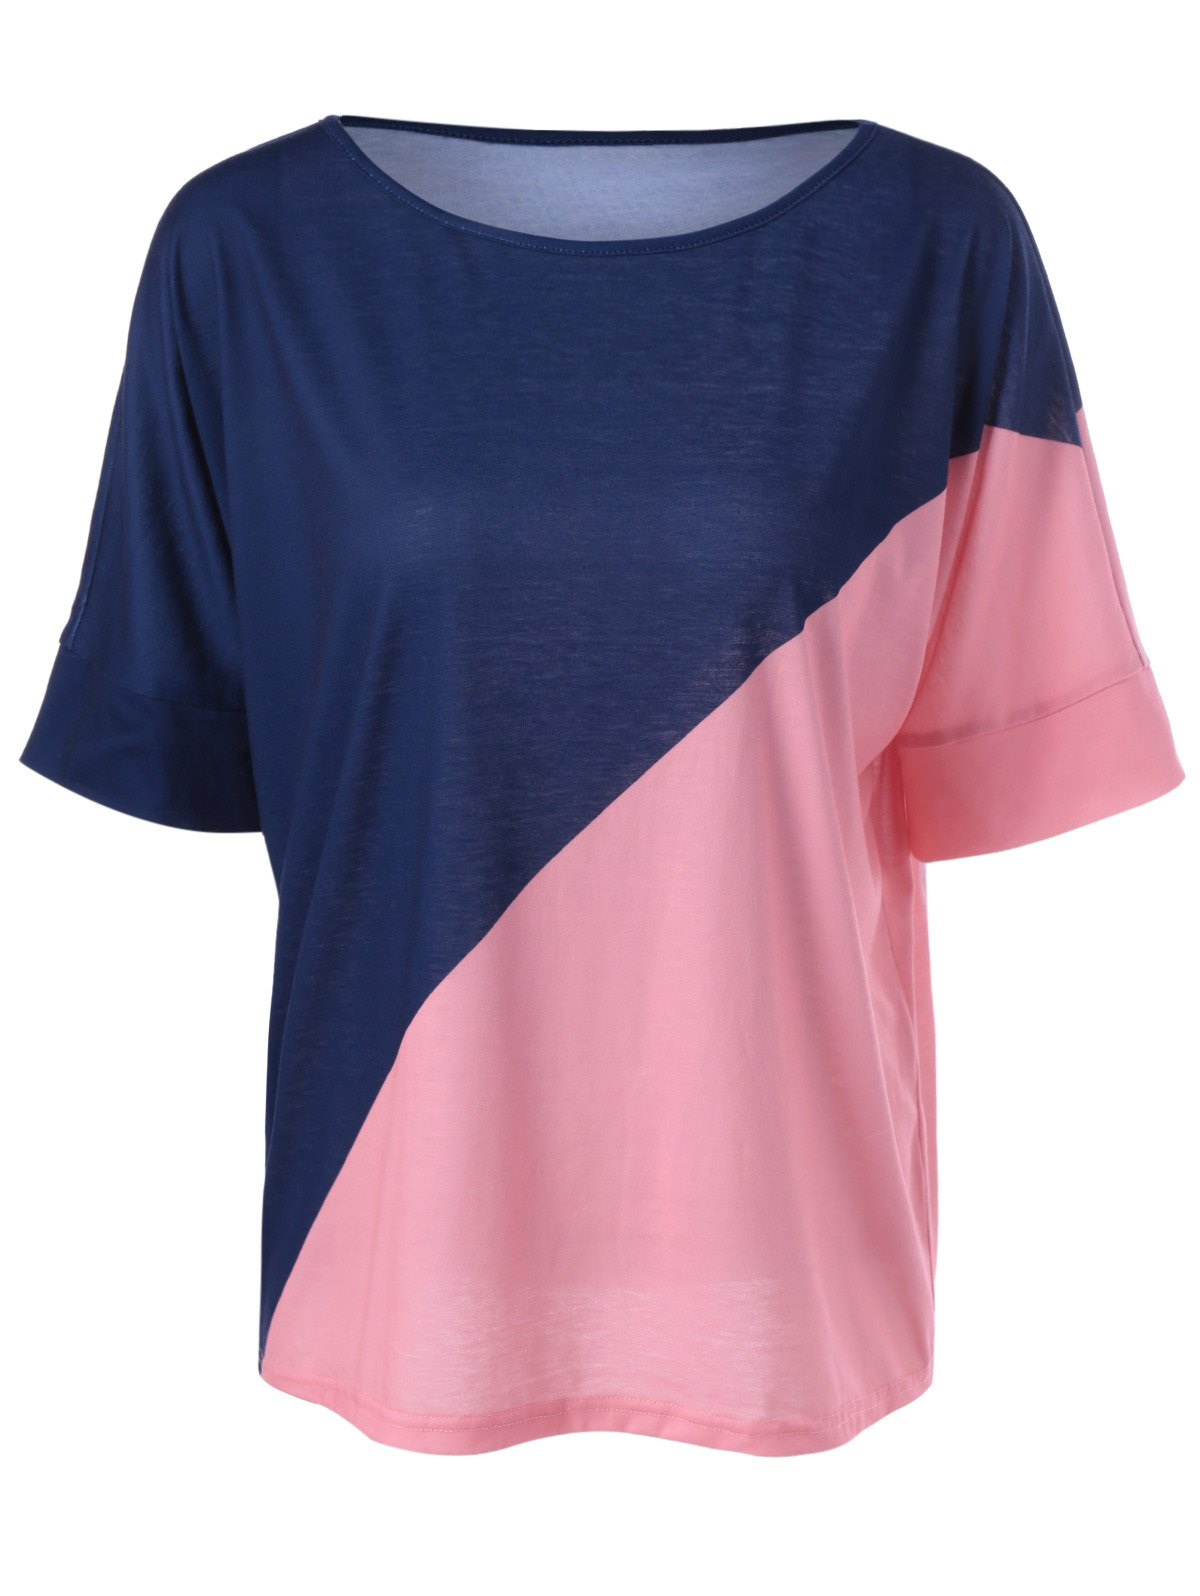 Casual Knitting Color Block Top For Women - BLUE/PINK S